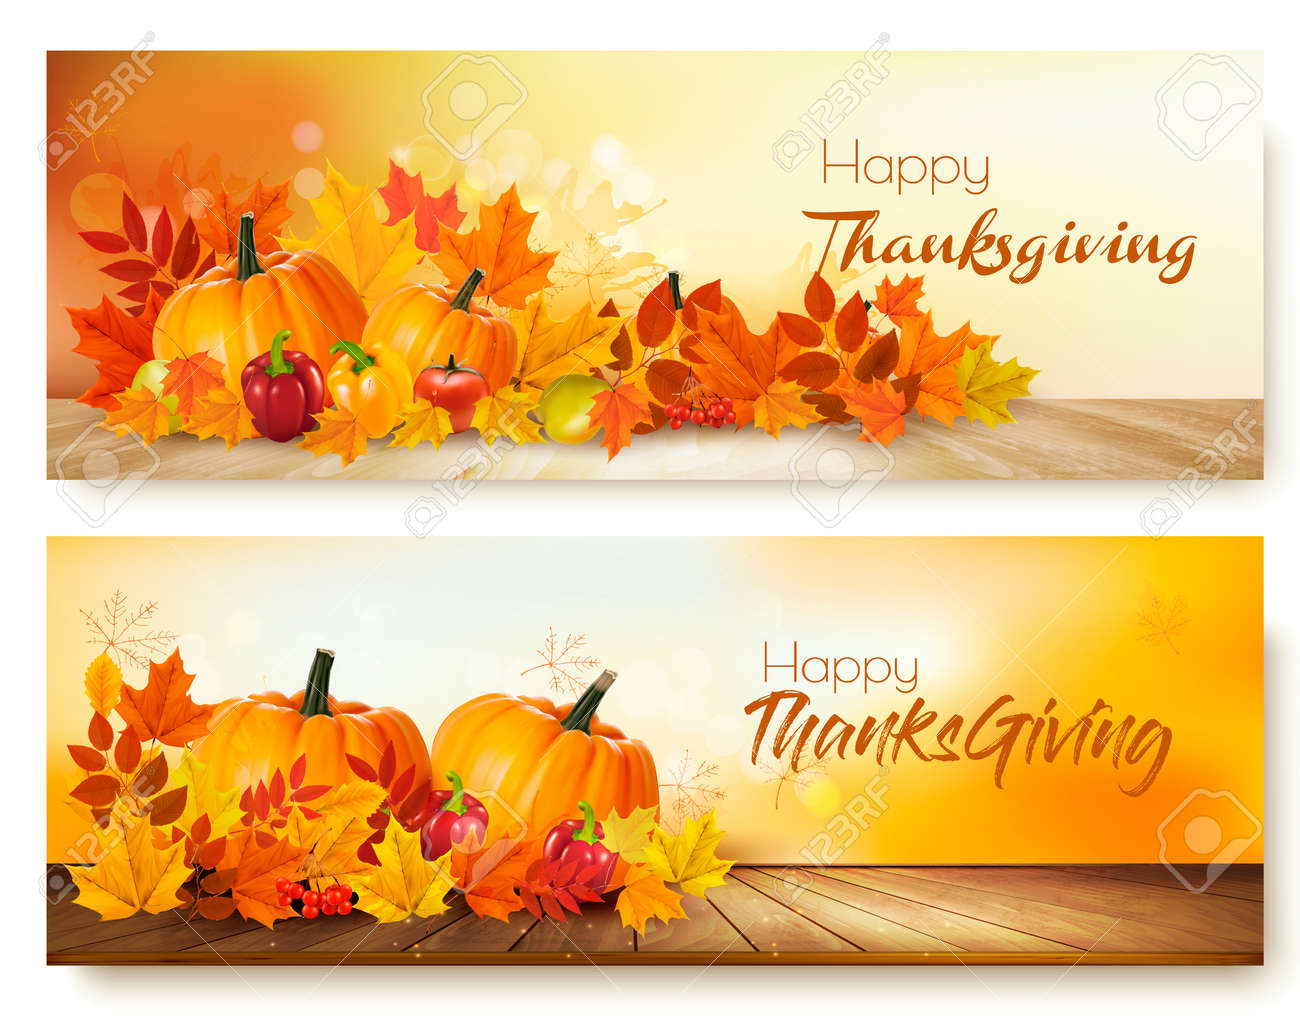 Happy Thanksgiving banners with autumn vegetables and colorful leaves. - 90304813